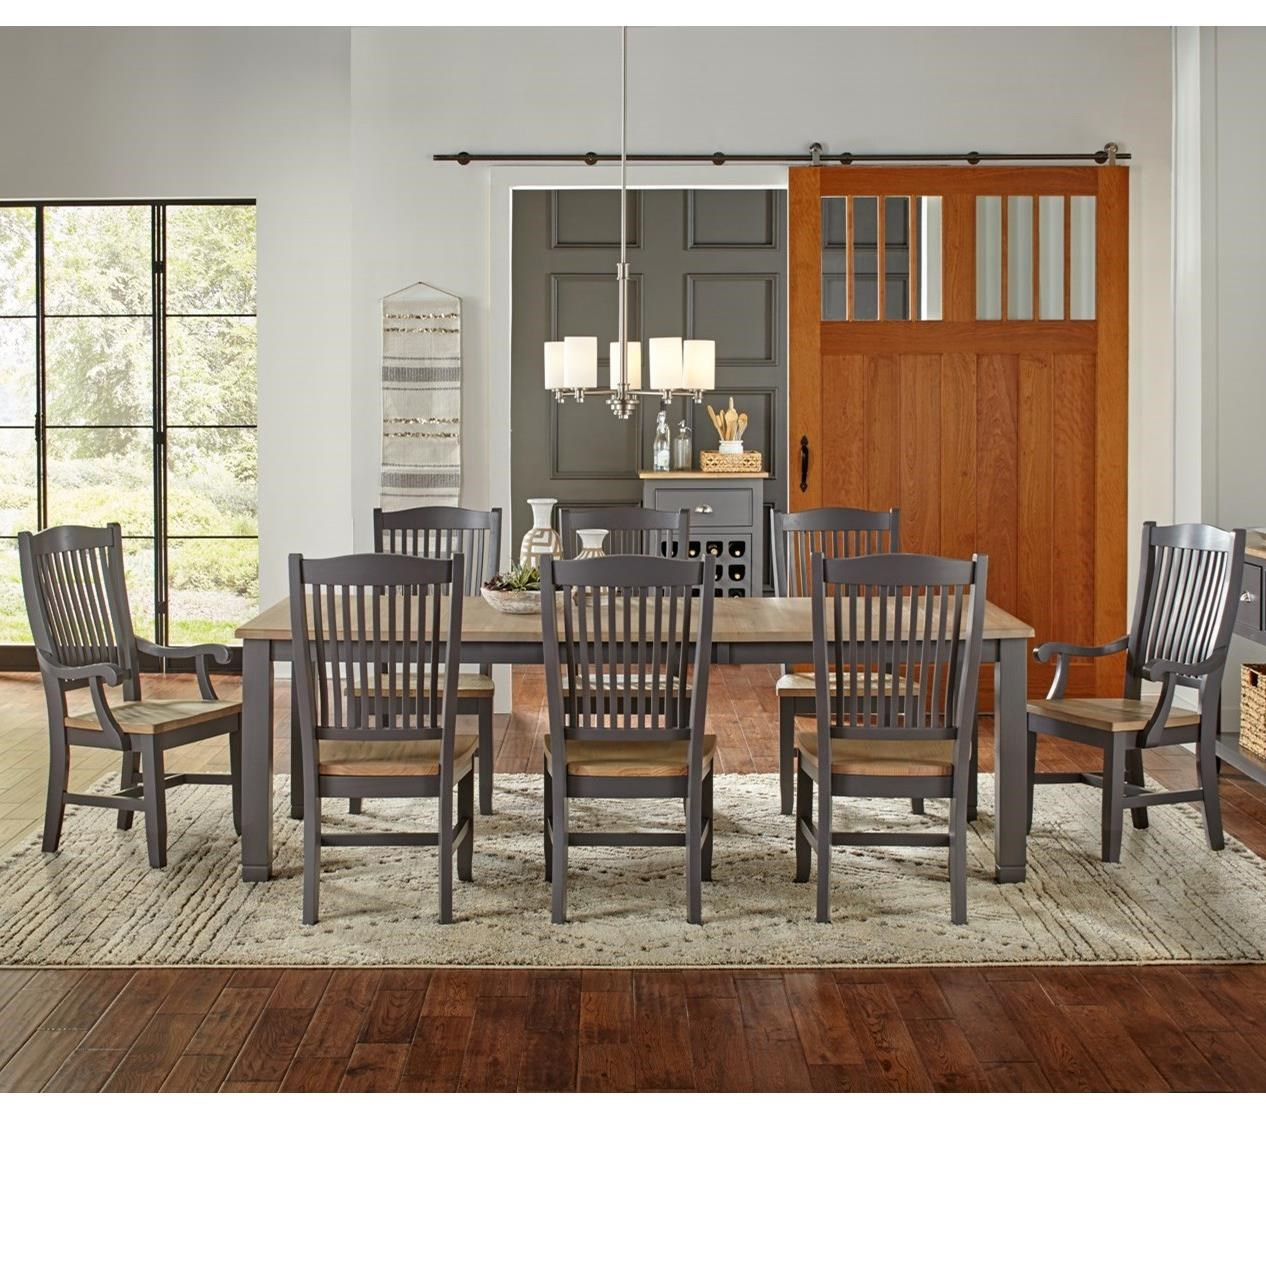 Port Townsend 9 Pc Table Set by AAmerica at Johnny Janosik